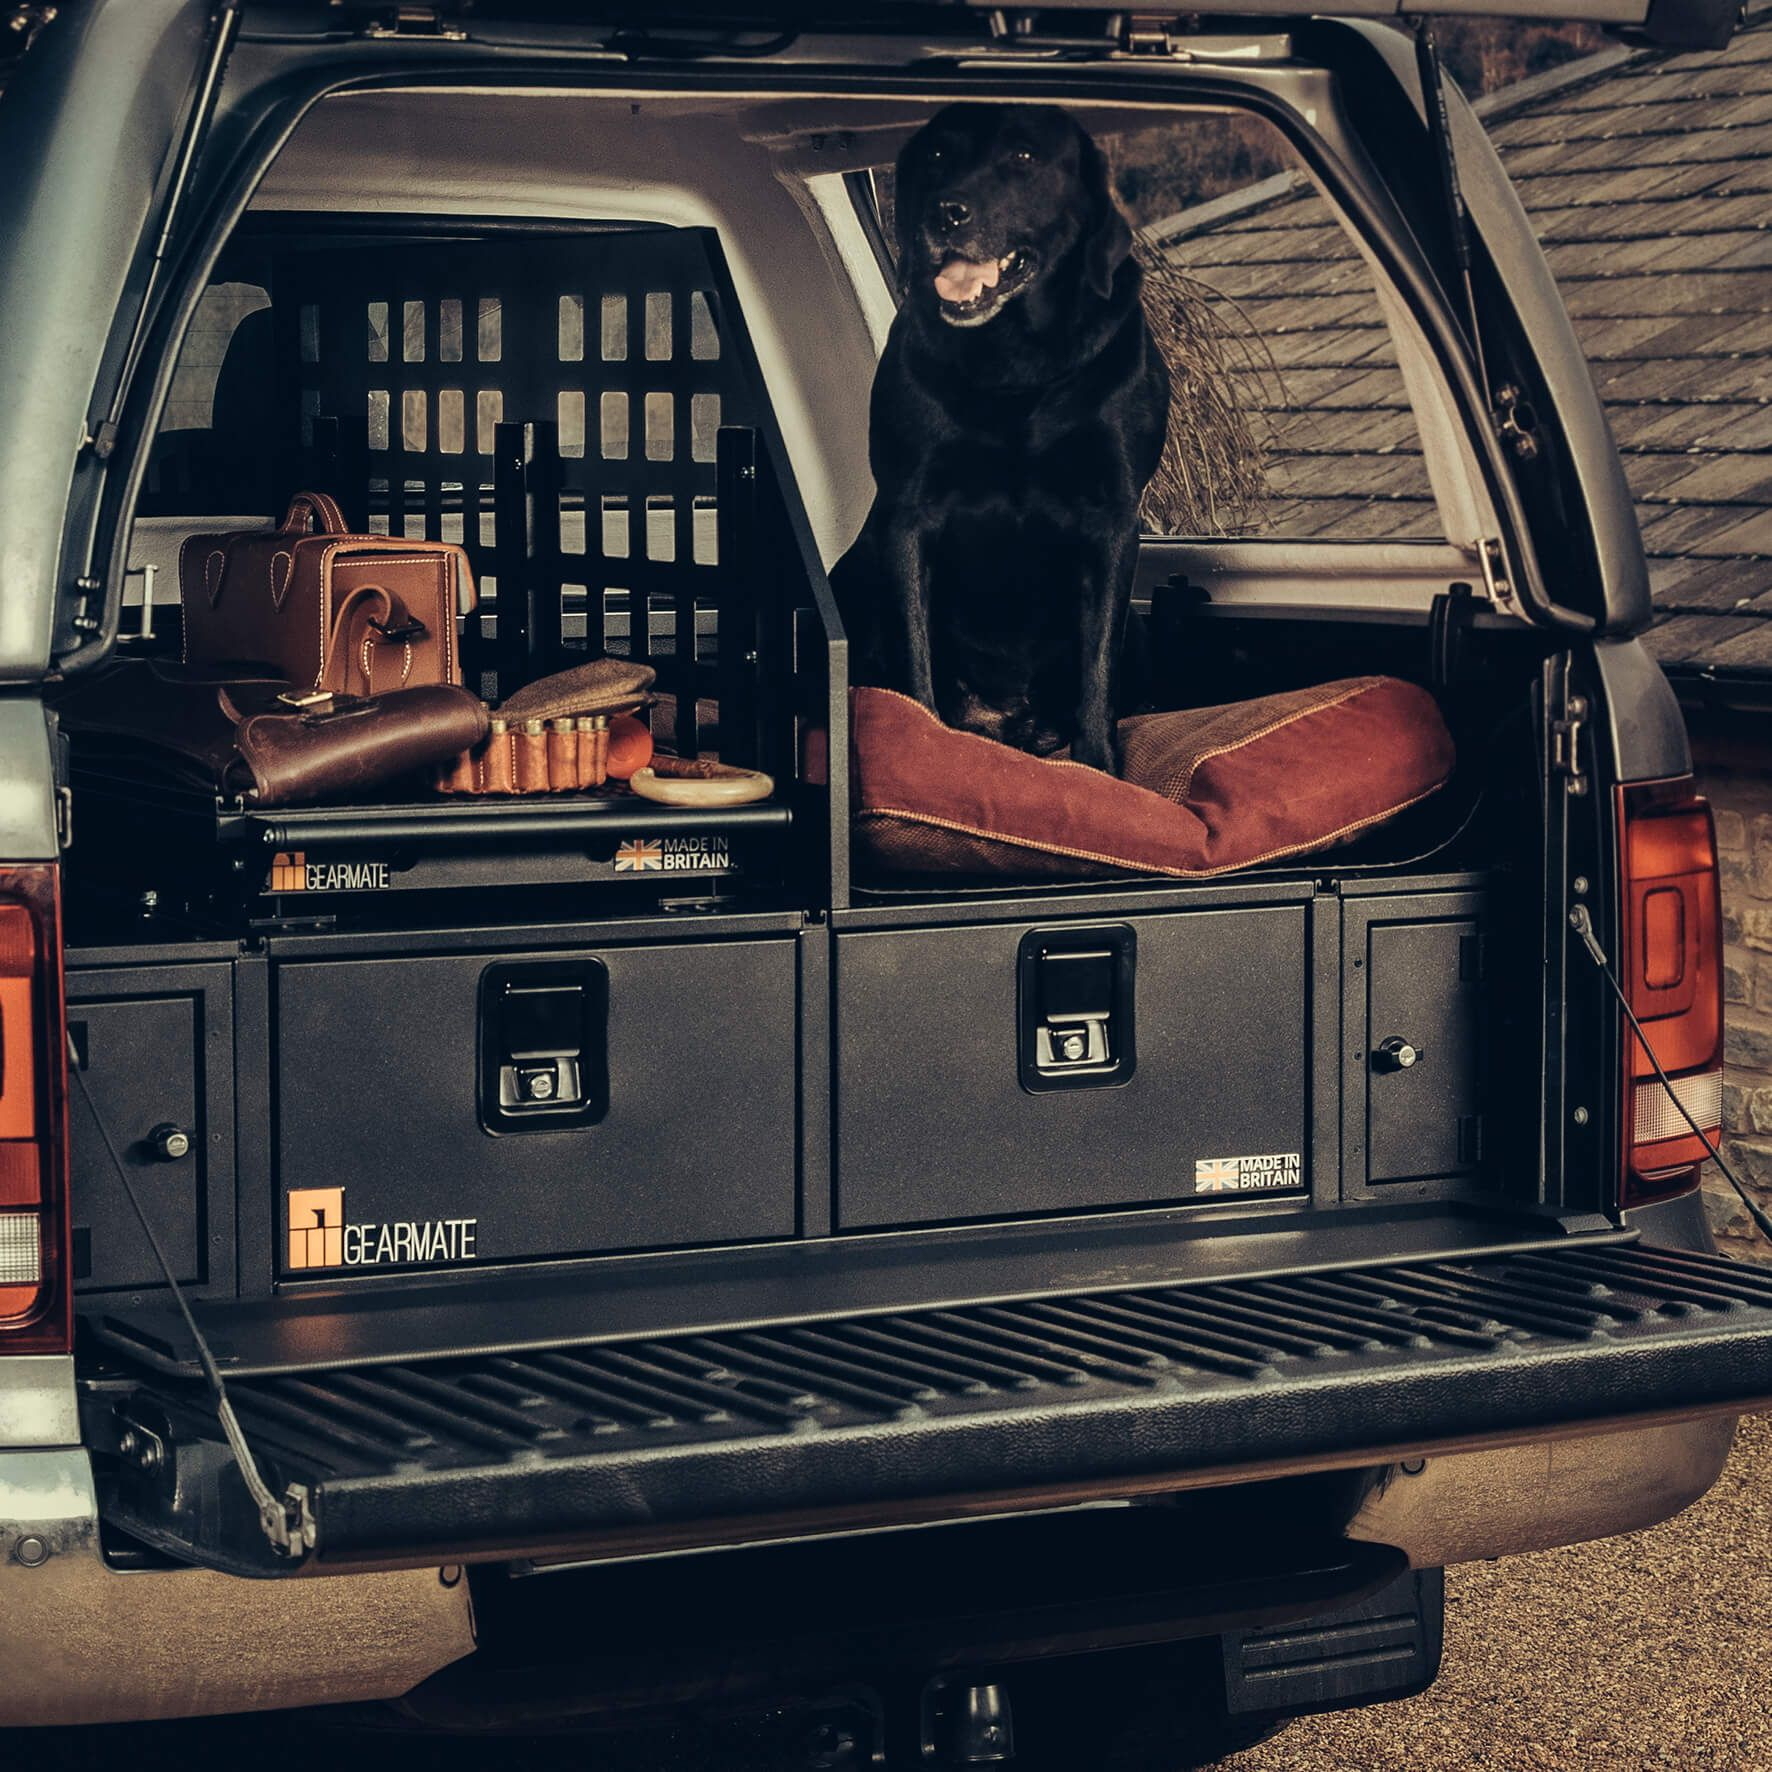 Pickup Truck Accessories Truck Bed Organiser Van Racking Systems Drawers Bed Slides Dog B Pickup Truck Accessories Truck Organization Van Racking Systems